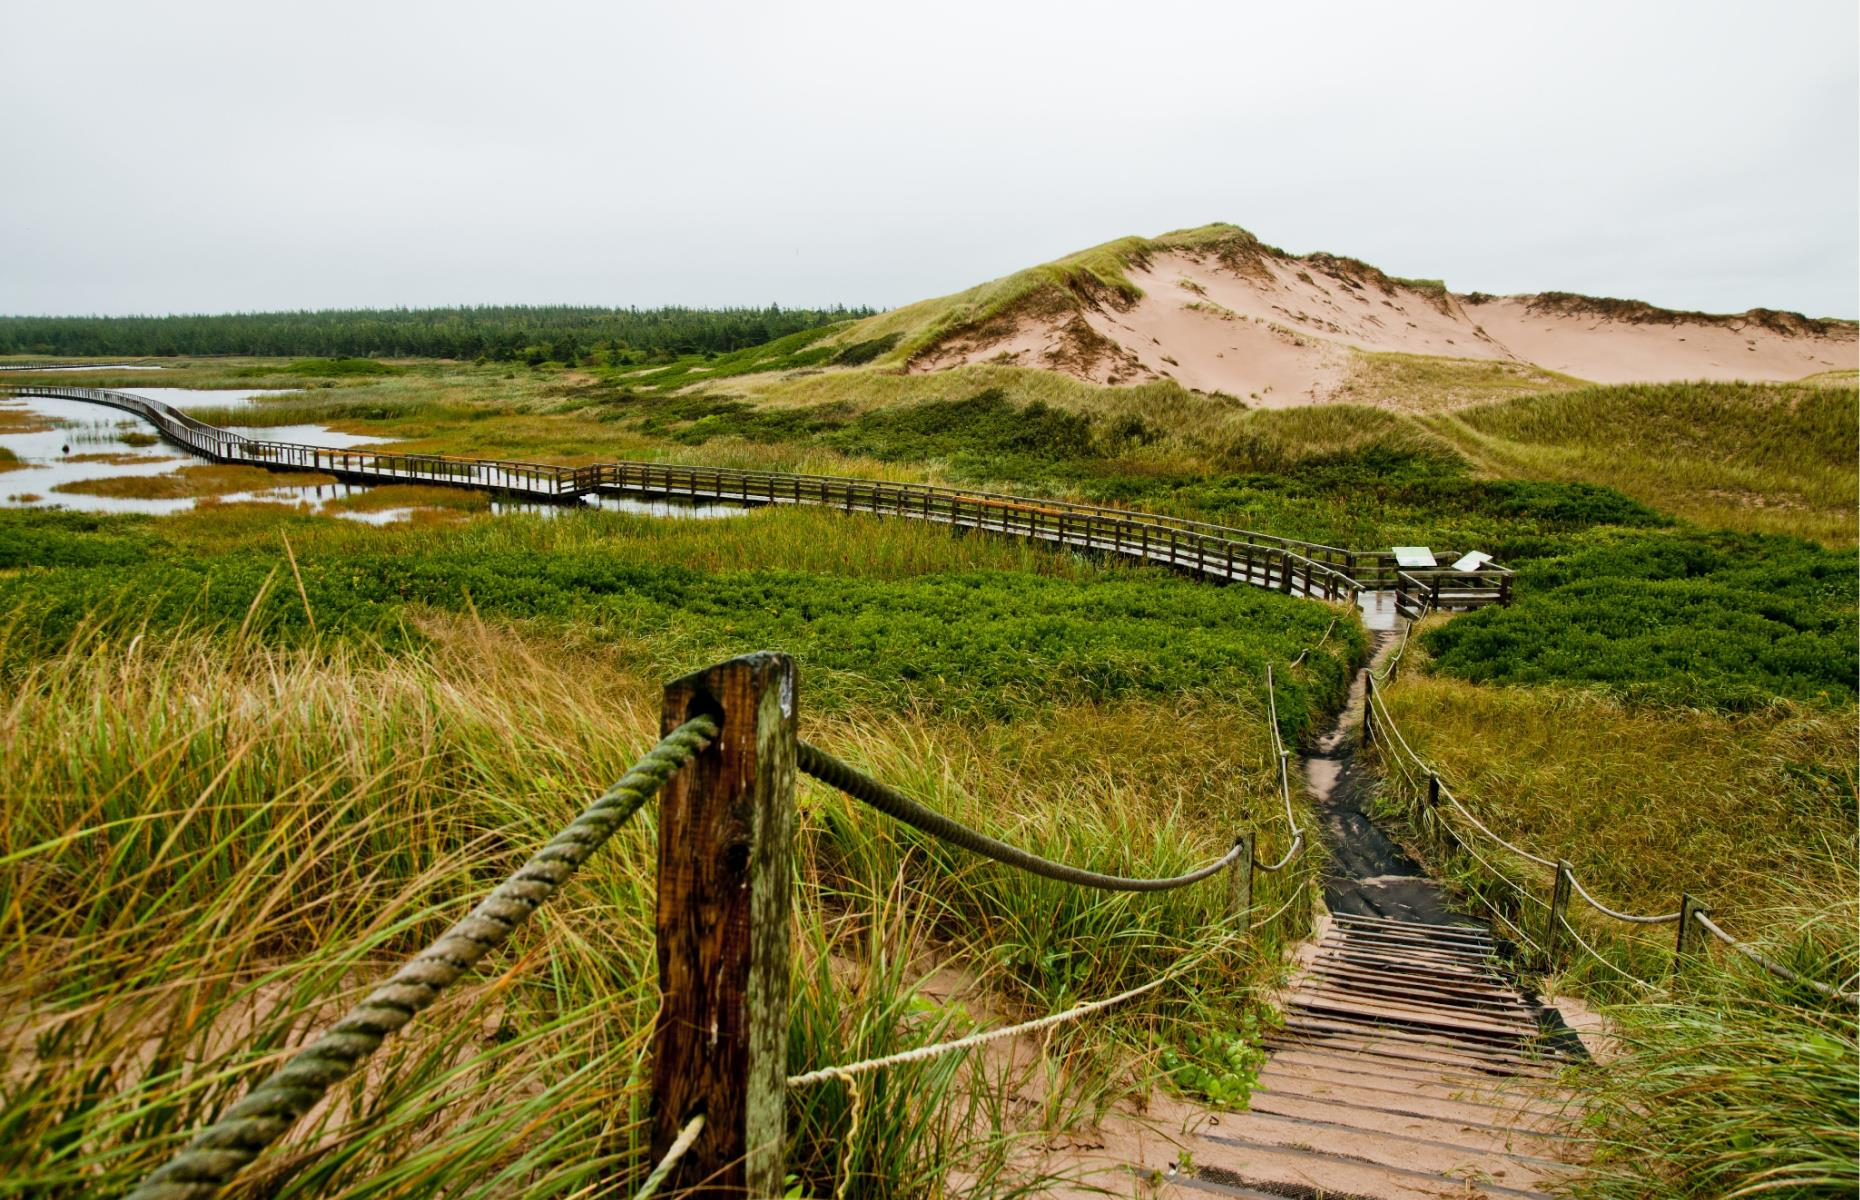 Slide 24 of 31: Located on the northern shore of PEI, Prince Edward Island National Park features a string of beaches, hiking and cycling trails. There are a staggering number of top attractions in the park, including the picturesque Greenwich sand dunes, the Dalvay-by-the-Sea National Historic Site and the famed Green Gables, home of L.M. Montgomery's fictional heroine Anne Shirley. It is also designated as an Important Bird Area and serves as a nesting ground for the endangered piping plover.